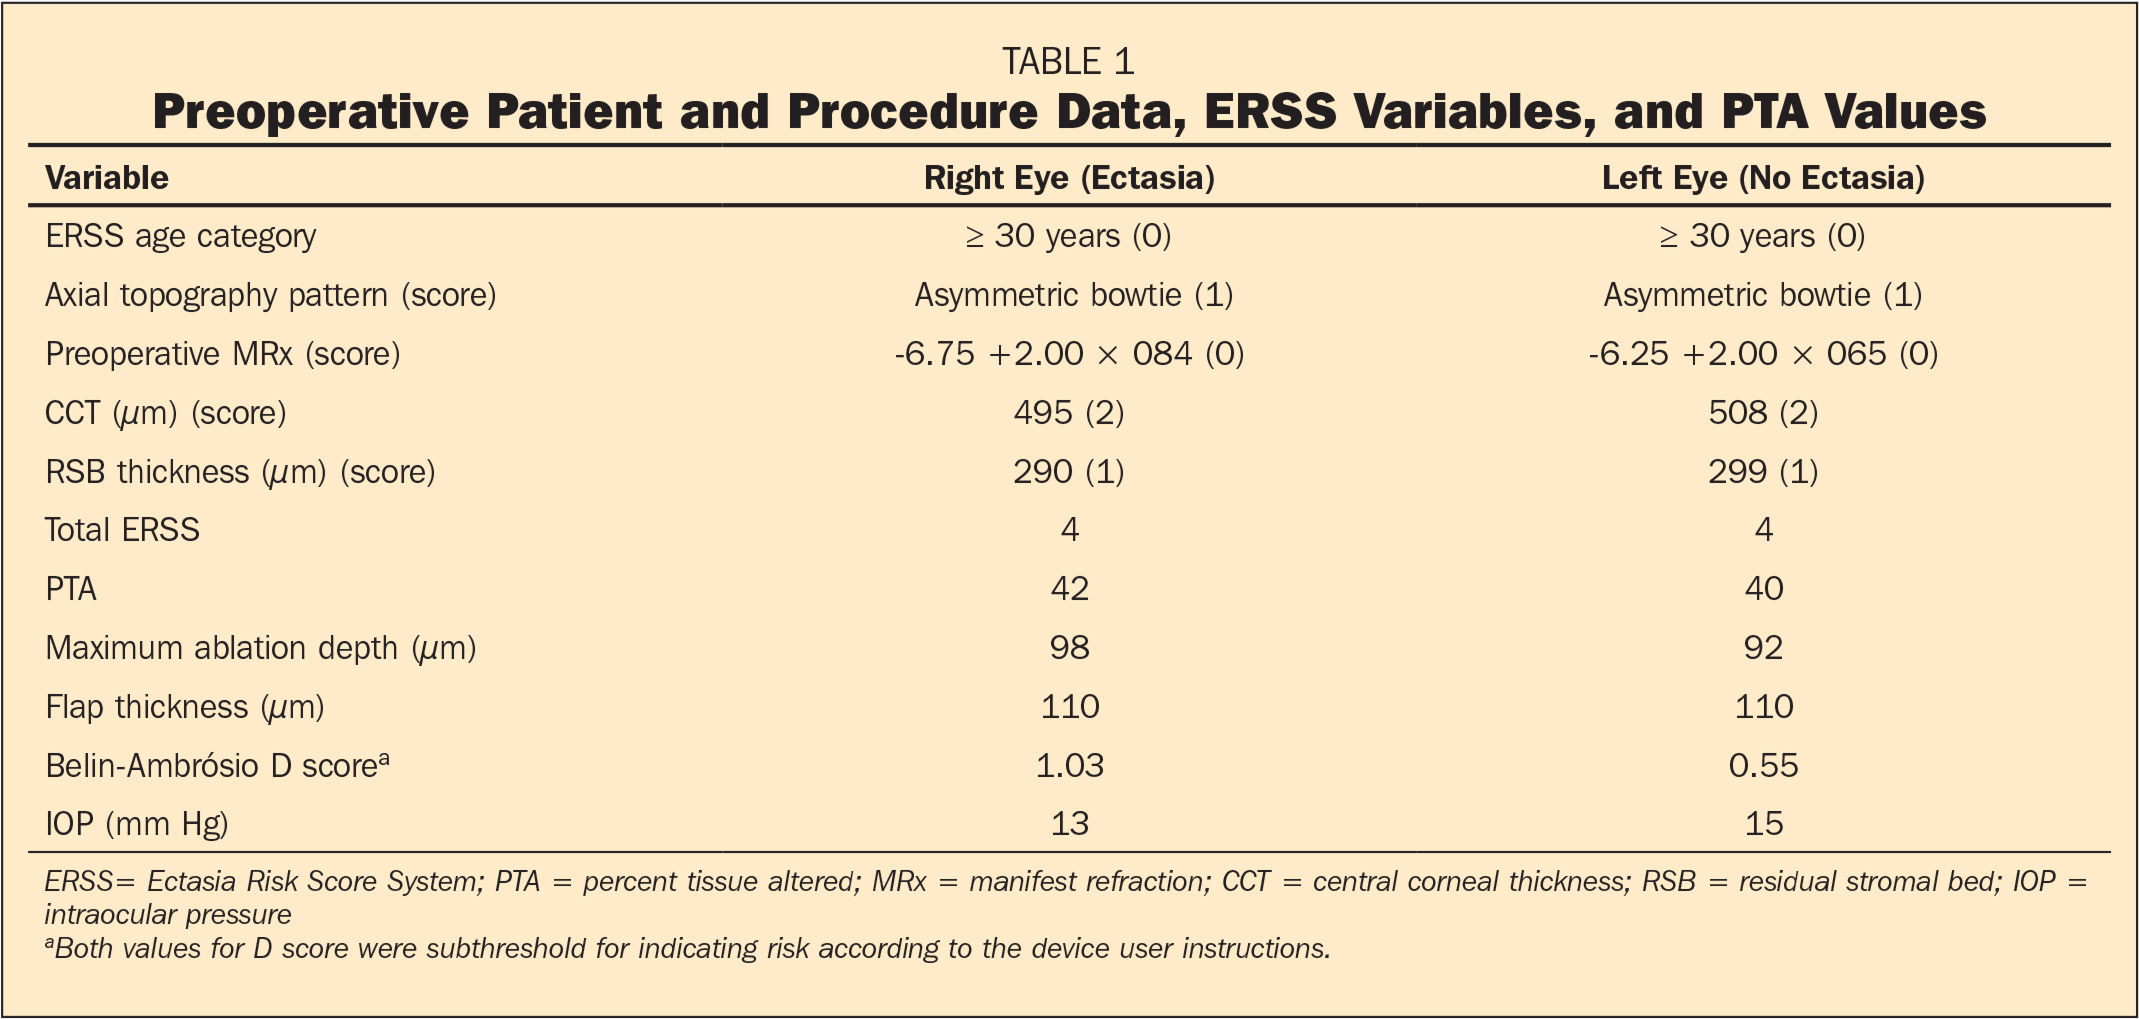 Preoperative Patient and Procedure Data, ERSS Variables, and PTA Values